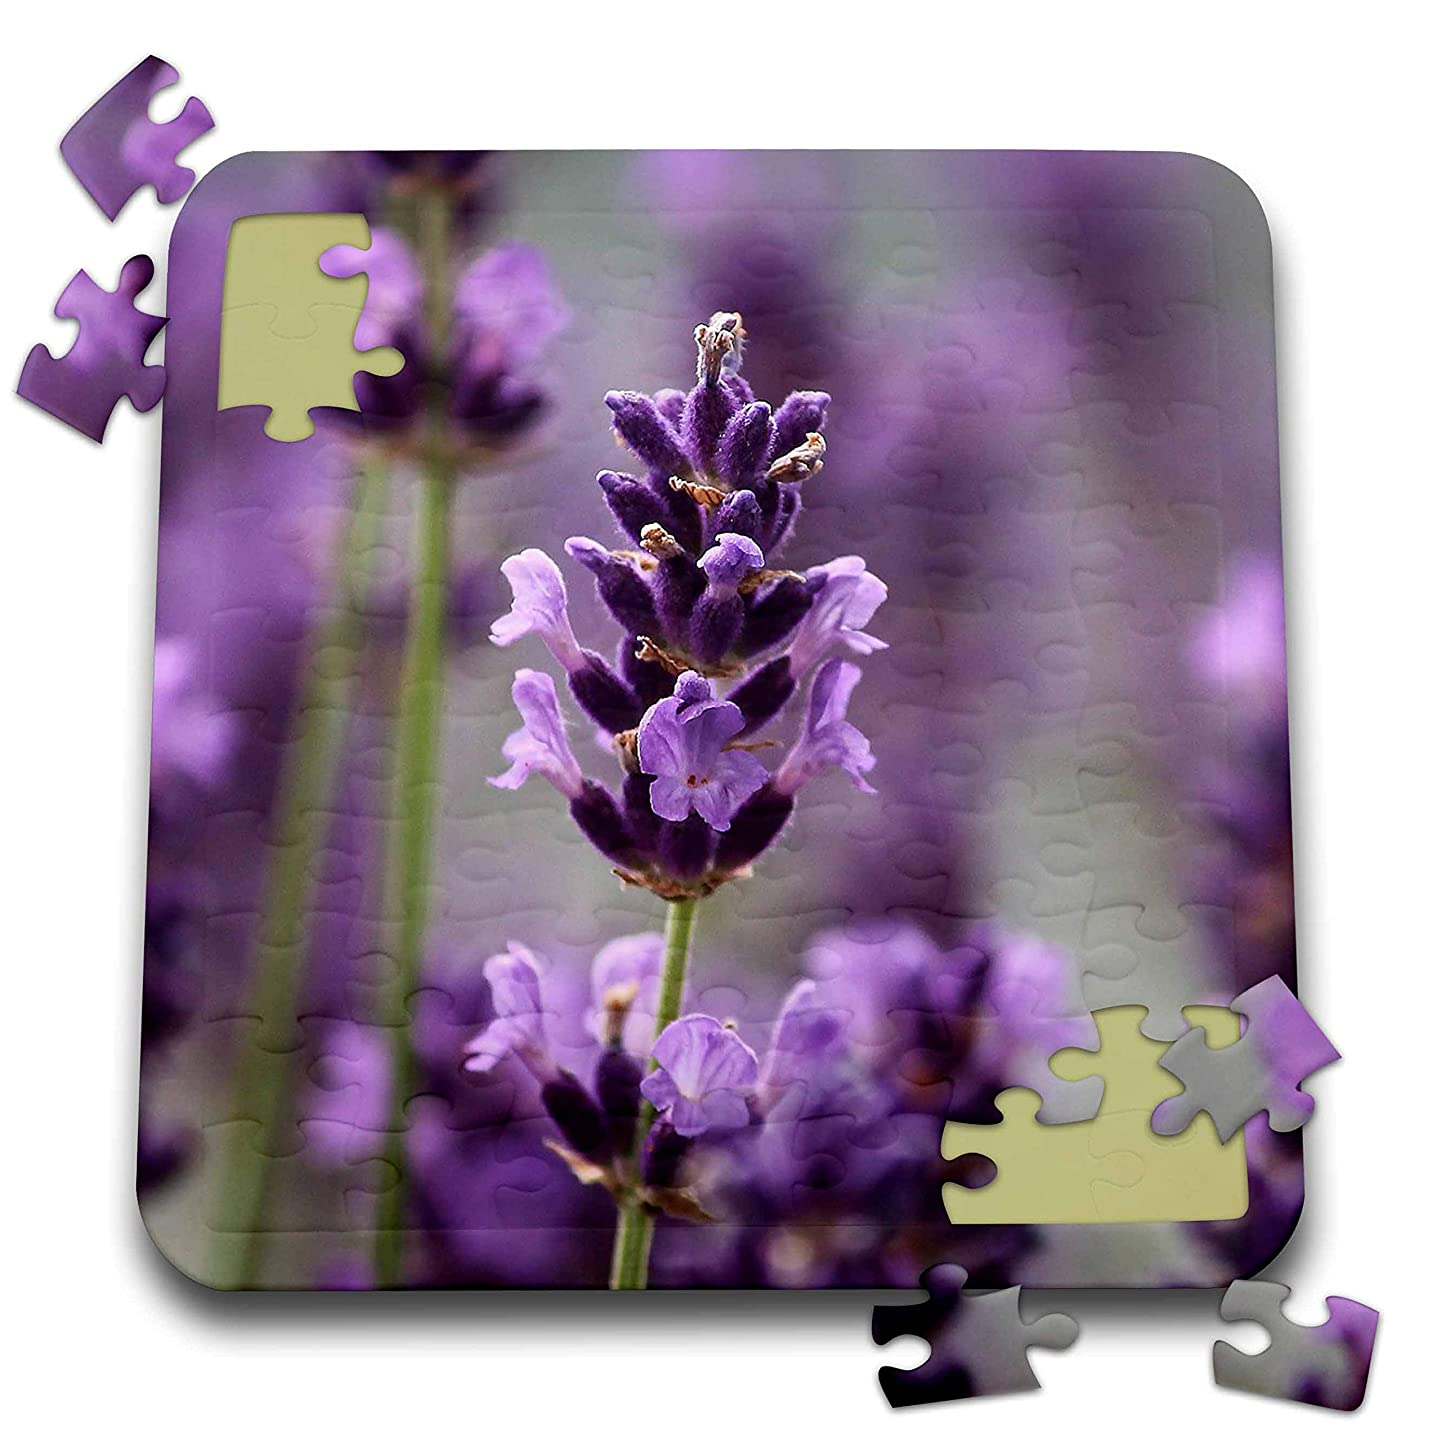 3dRose Sven Herkenrath Nature - Photography of Lavender Wonderful Purple Flower Blossom - 10x10 Inch Puzzle (pzl_306692_2)